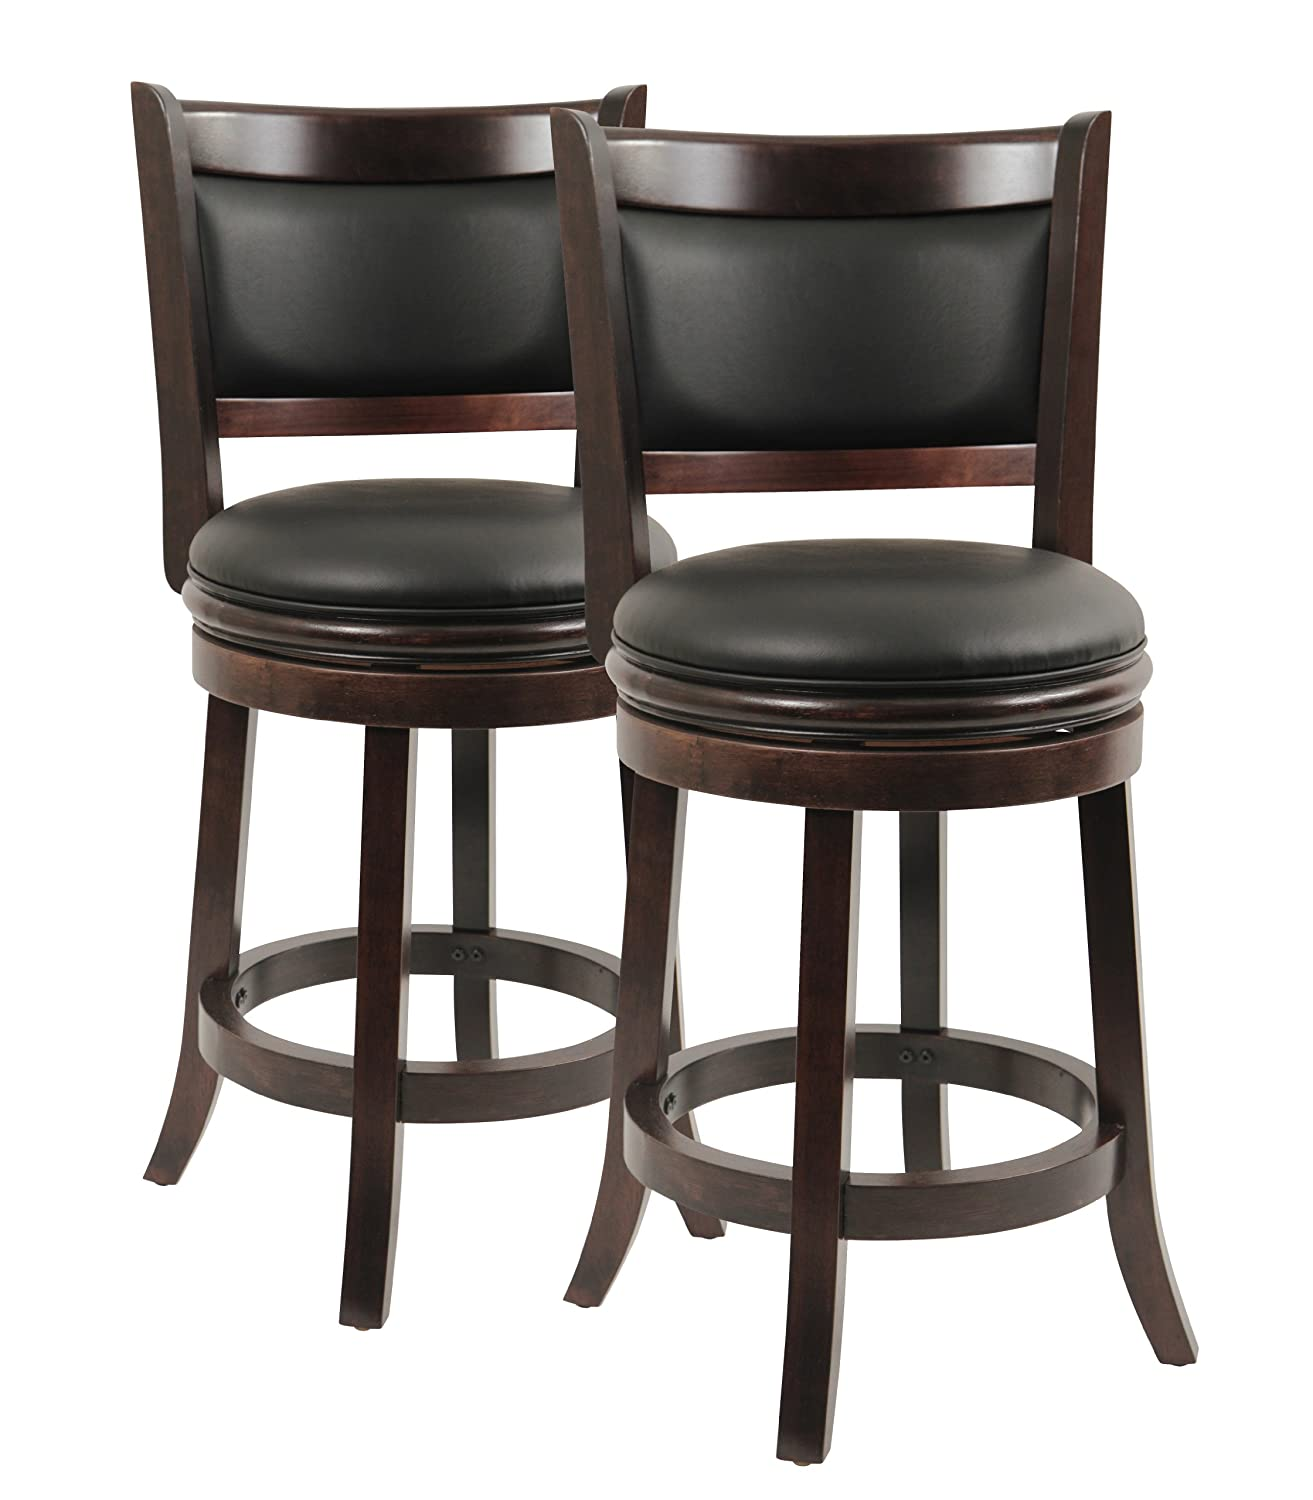 Boraam 49824 Augusta Swivel Stool, 24-Inch, Cherry